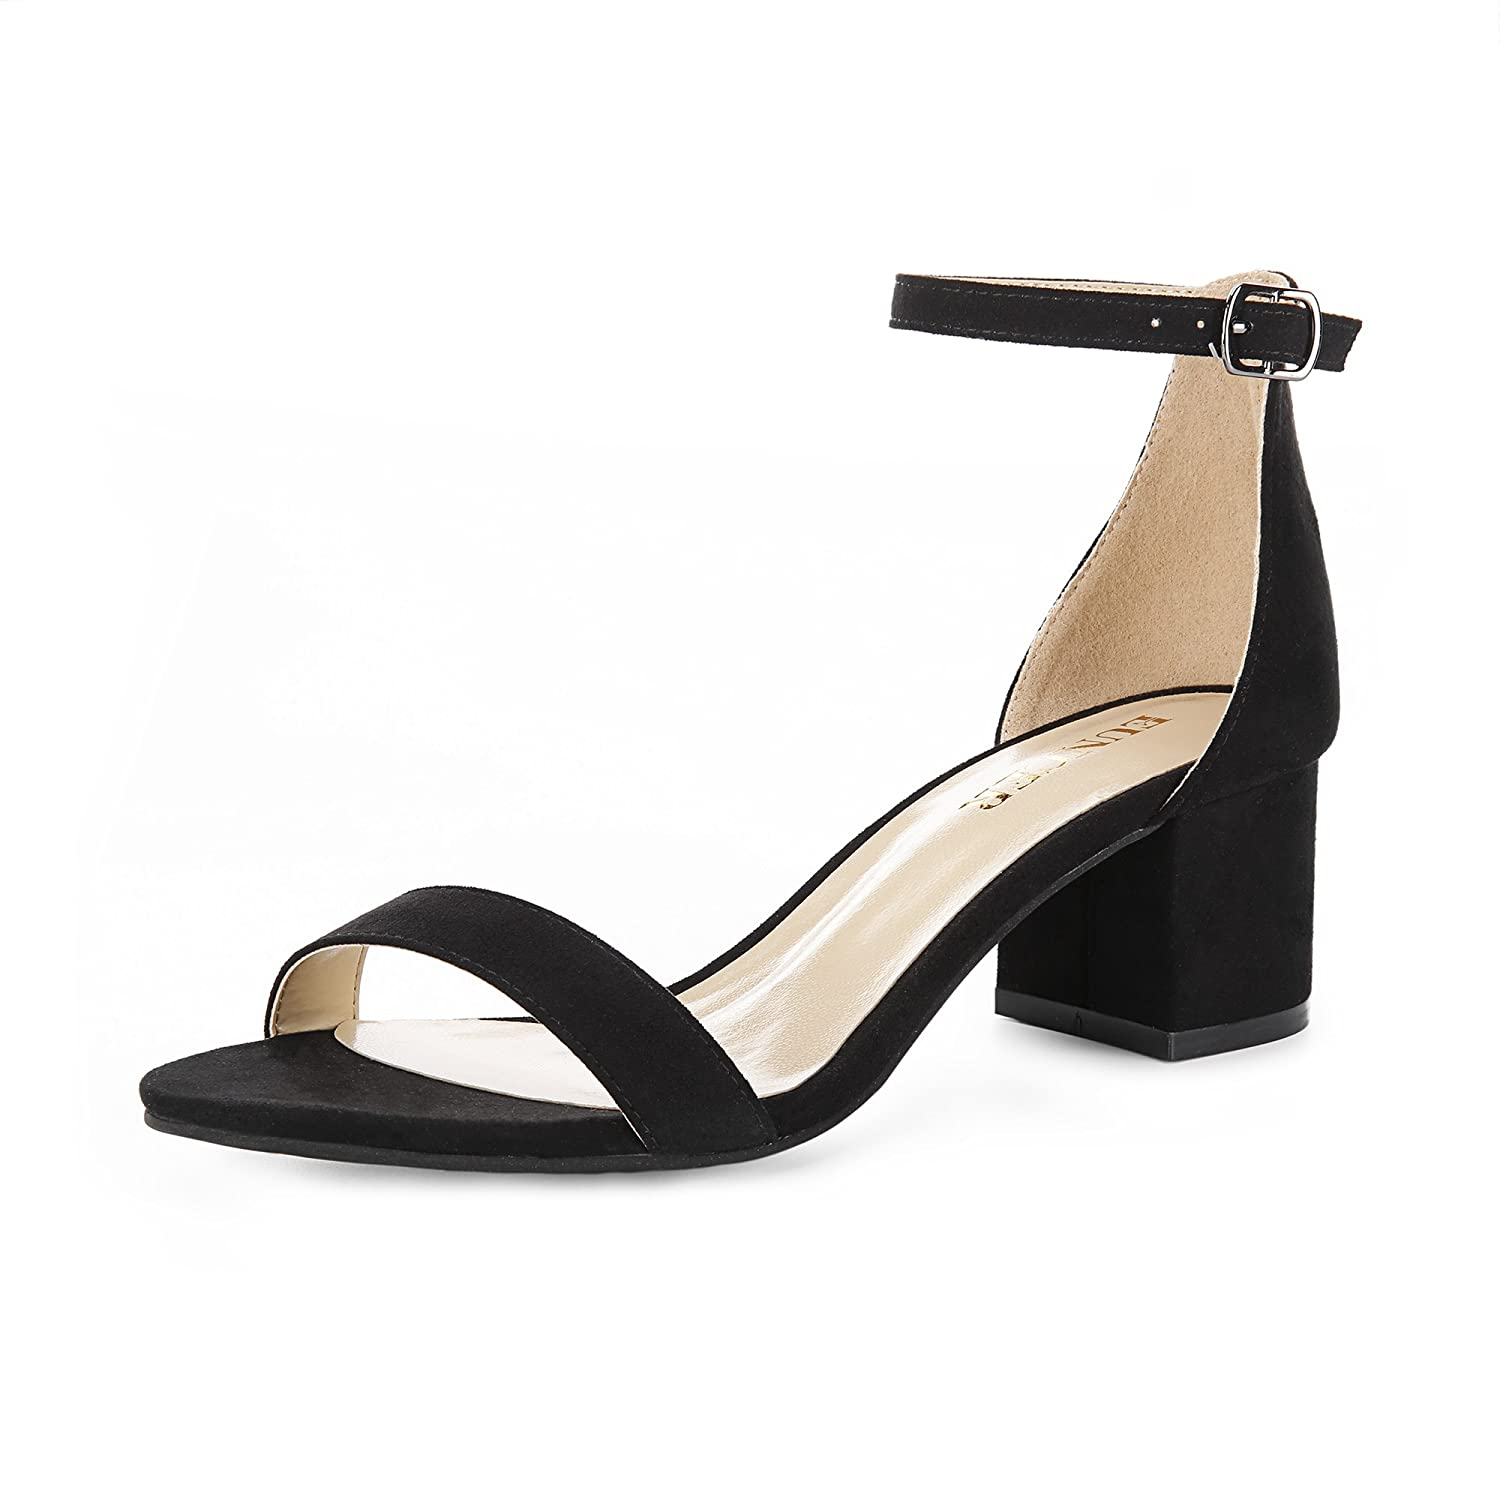 0374f9031e Amazon.com | Eunicer Women's Single Band Classic Chunky Block Low Heel  Sandals with Ankle Strap Dress Shoes, Black Suede, 5.5 B(M) US | Heeled  Sandals